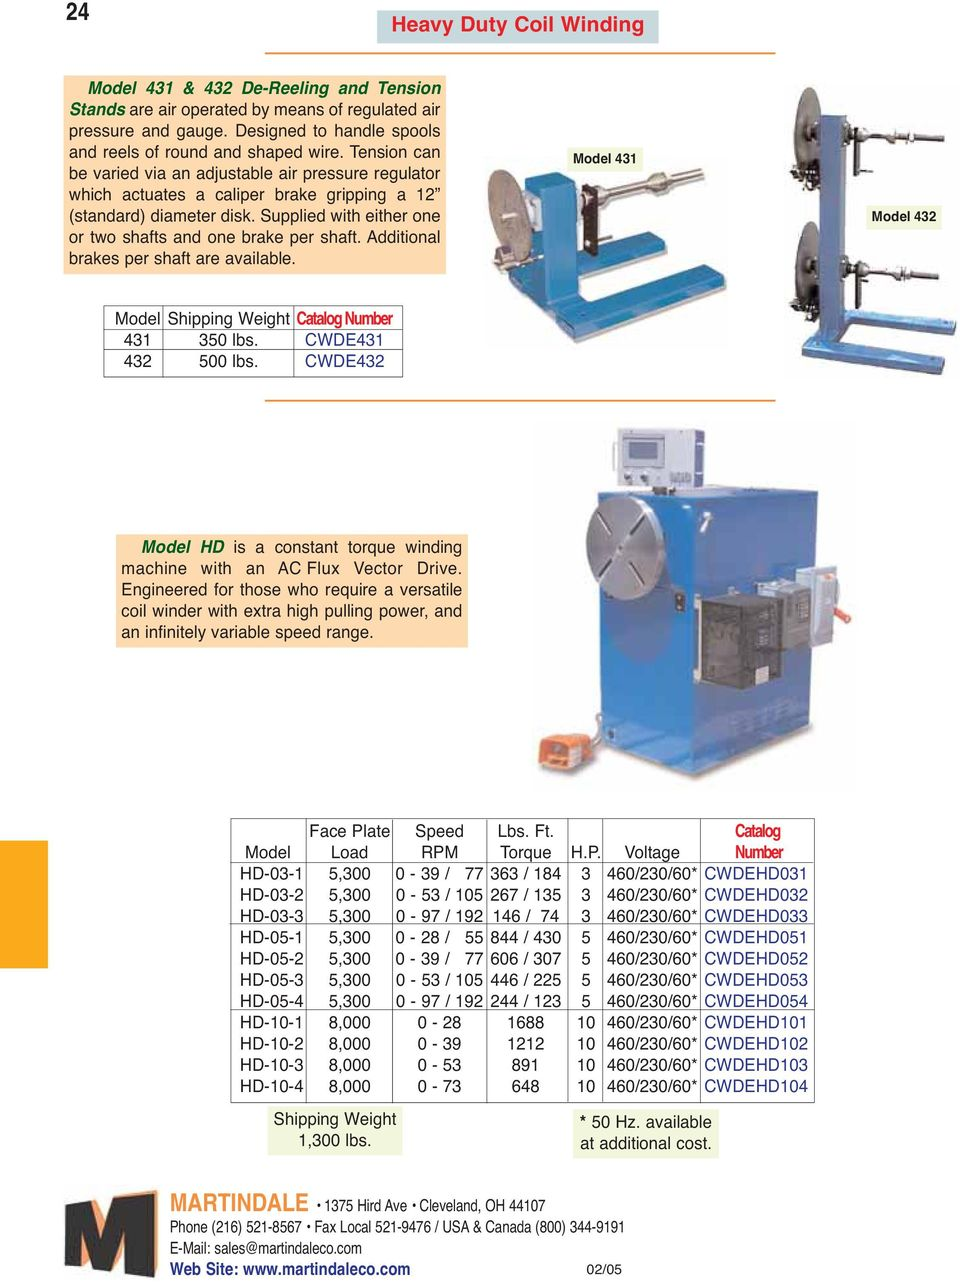 Additional brakes per shaft are available. Model 431 Model 432 431 350 lbs. CWDE431 432 500 lbs. CWDE432 Model HD is a constant torque winding machine with an AC Flux Vector Drive.